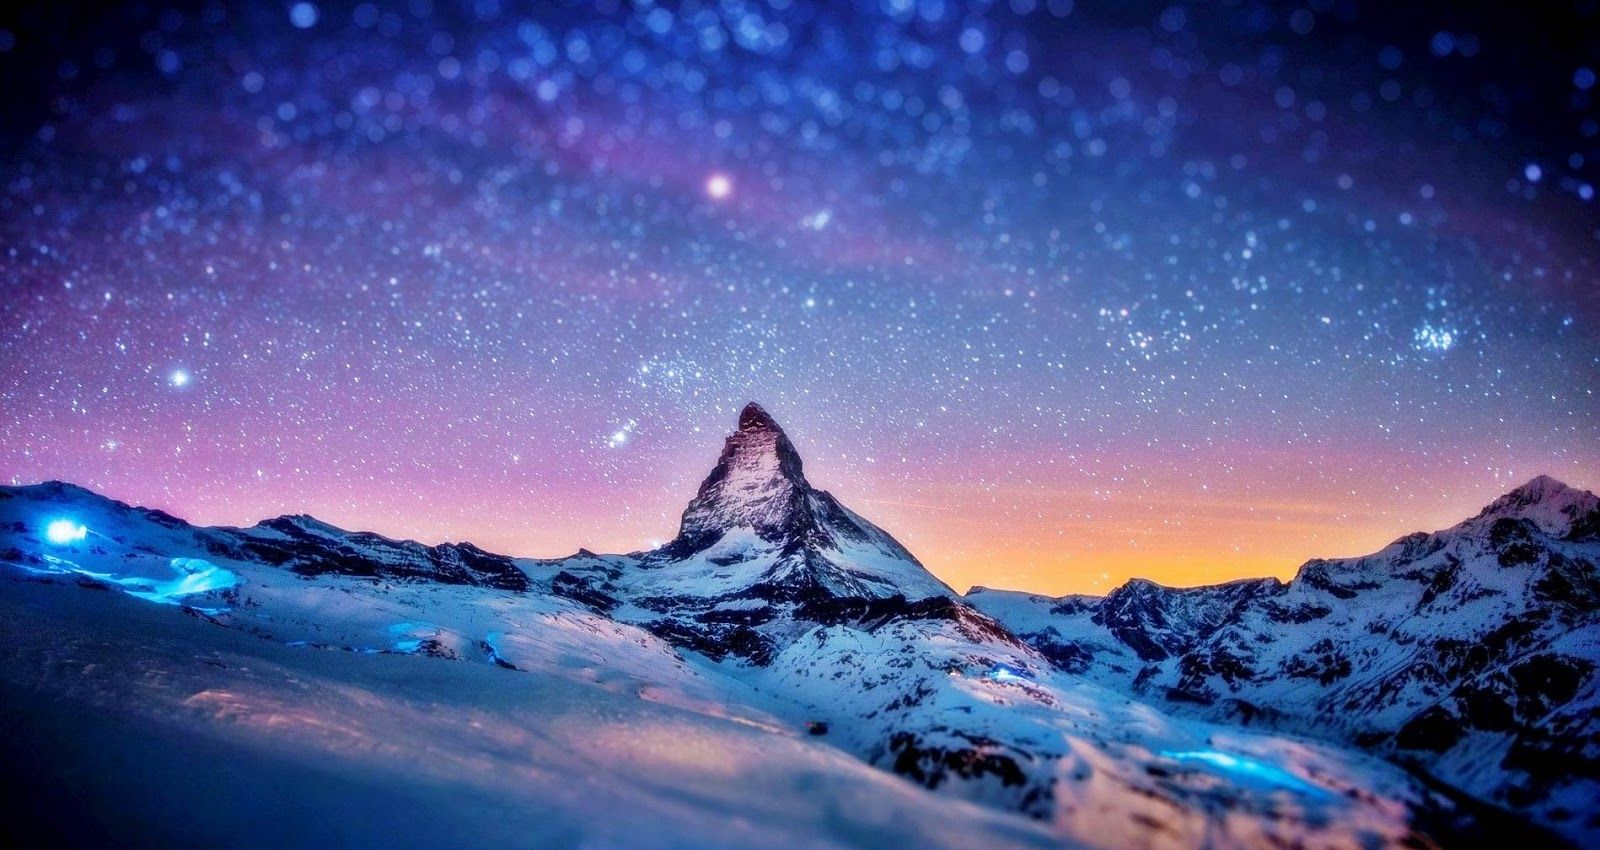 Snow Mountain Wallpaper Hd Snow Mountain In Night Mountain